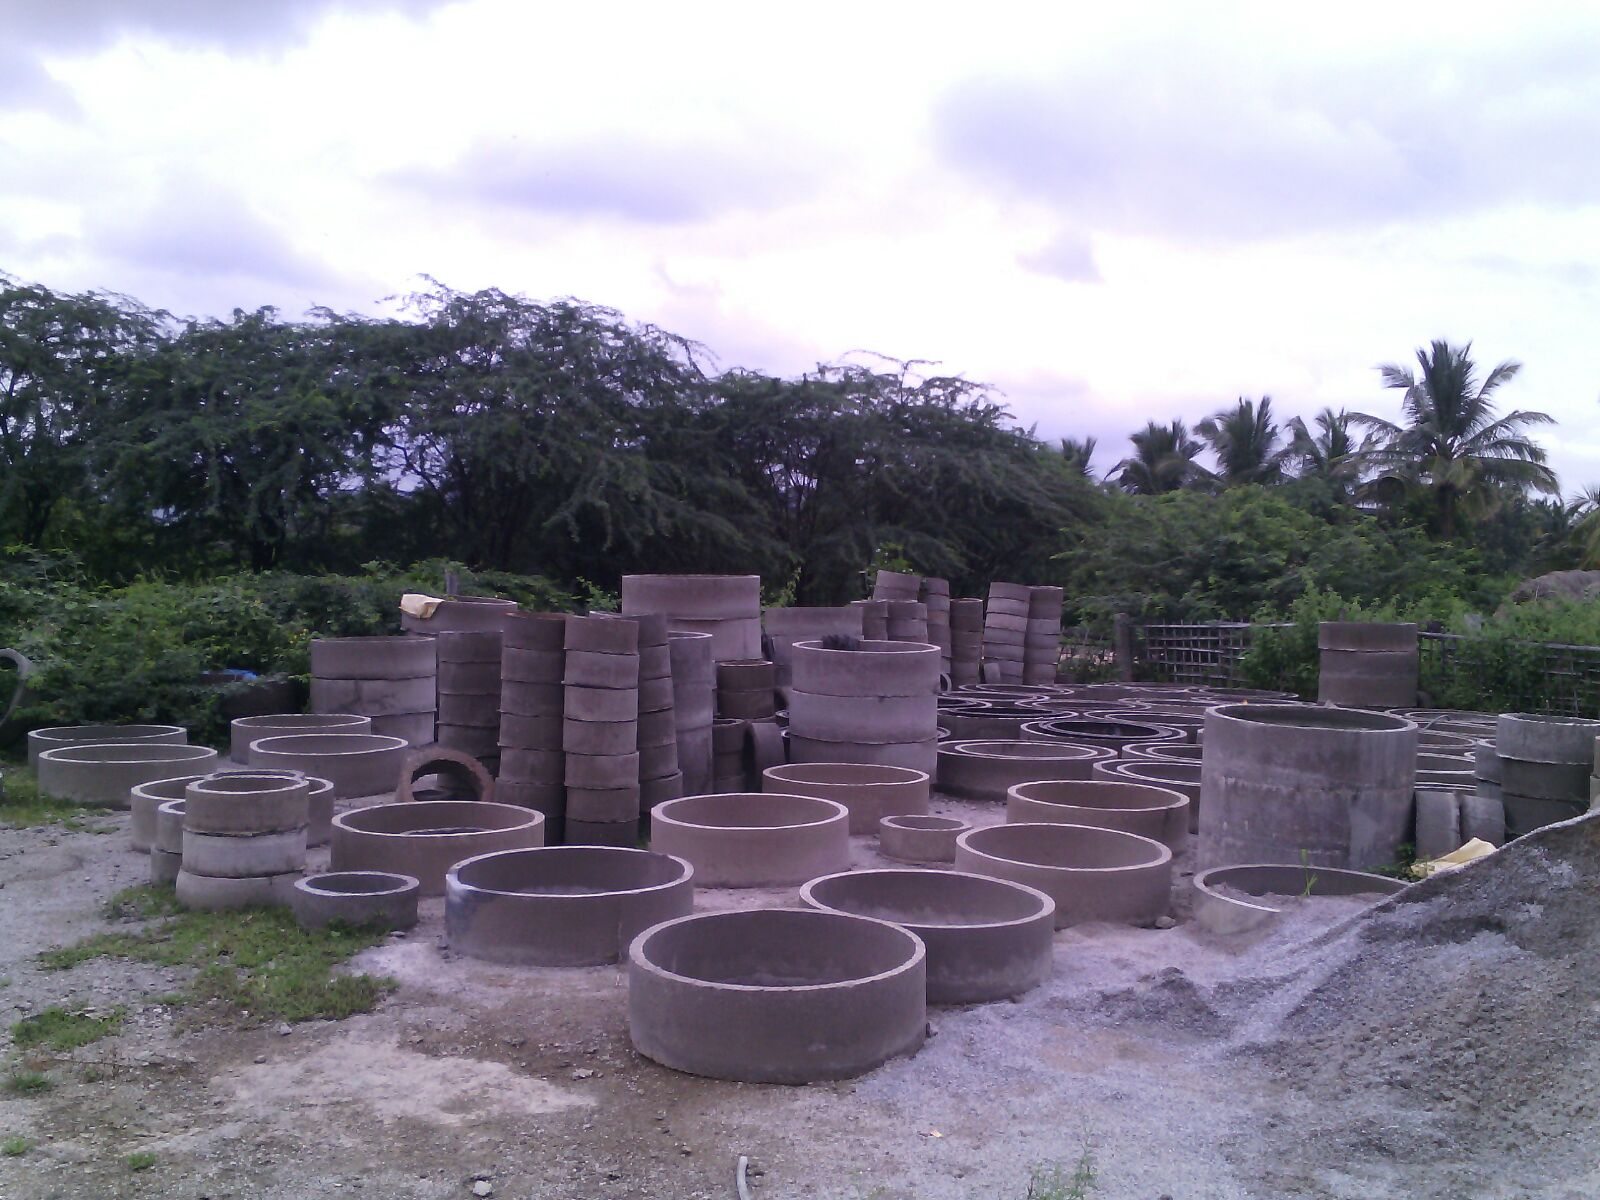 LIMRA CEMENT PIPES